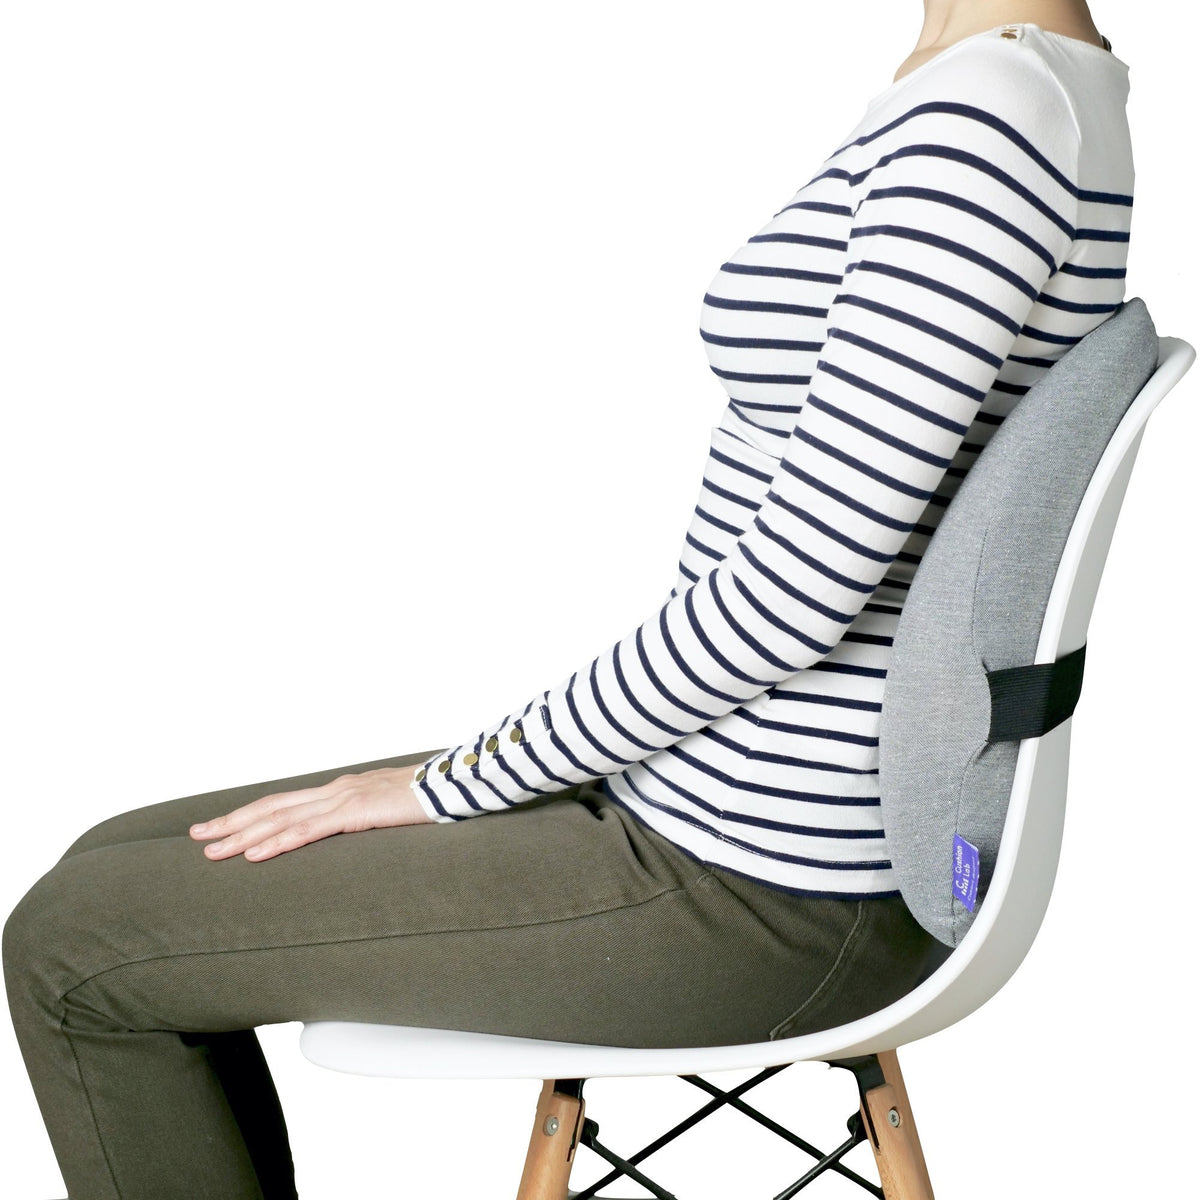 Ergonomic Lumbar Support Pillow - Cushion Lab